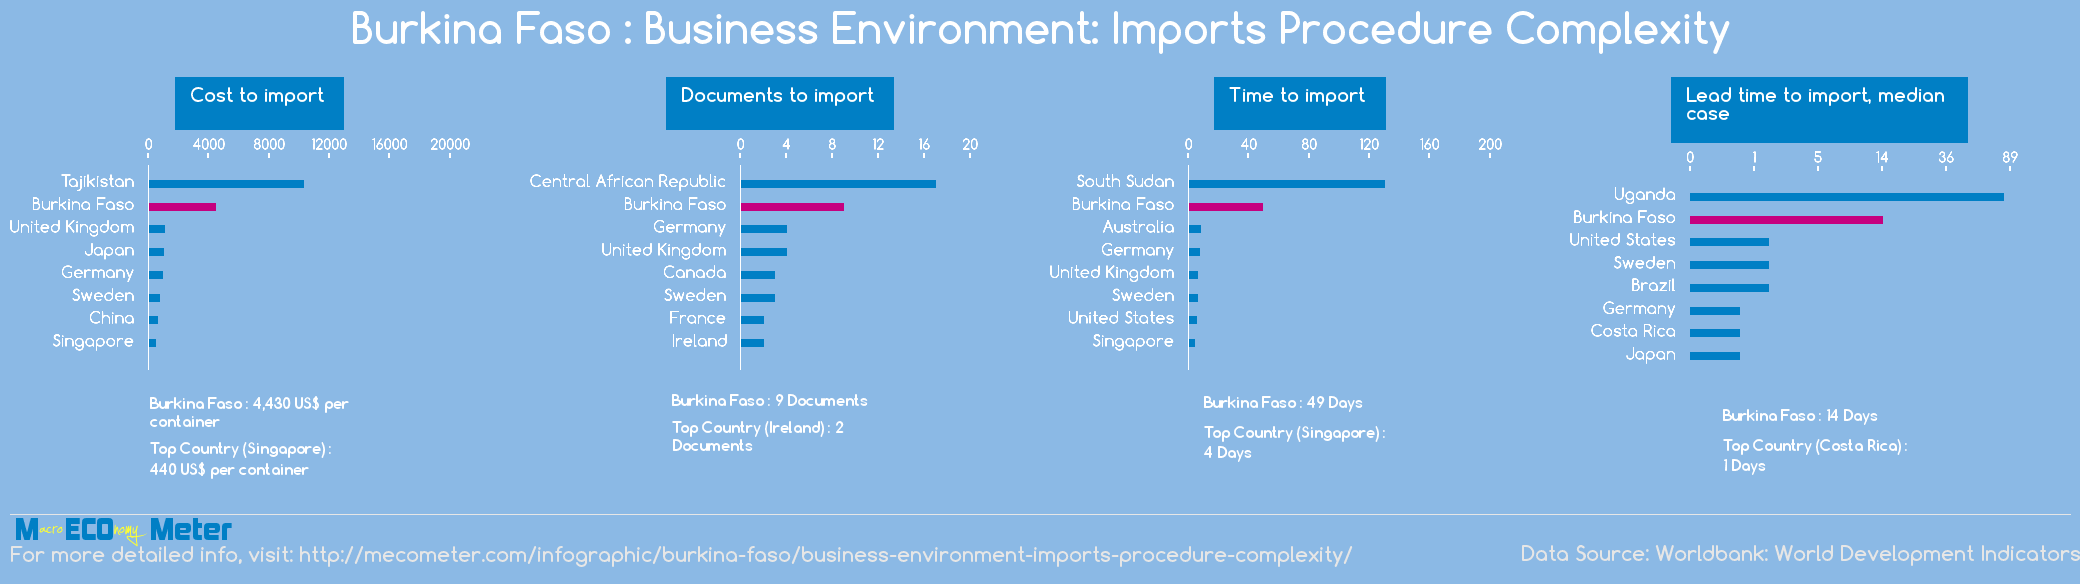 Burkina Faso : Business Environment: Imports Procedure Complexity